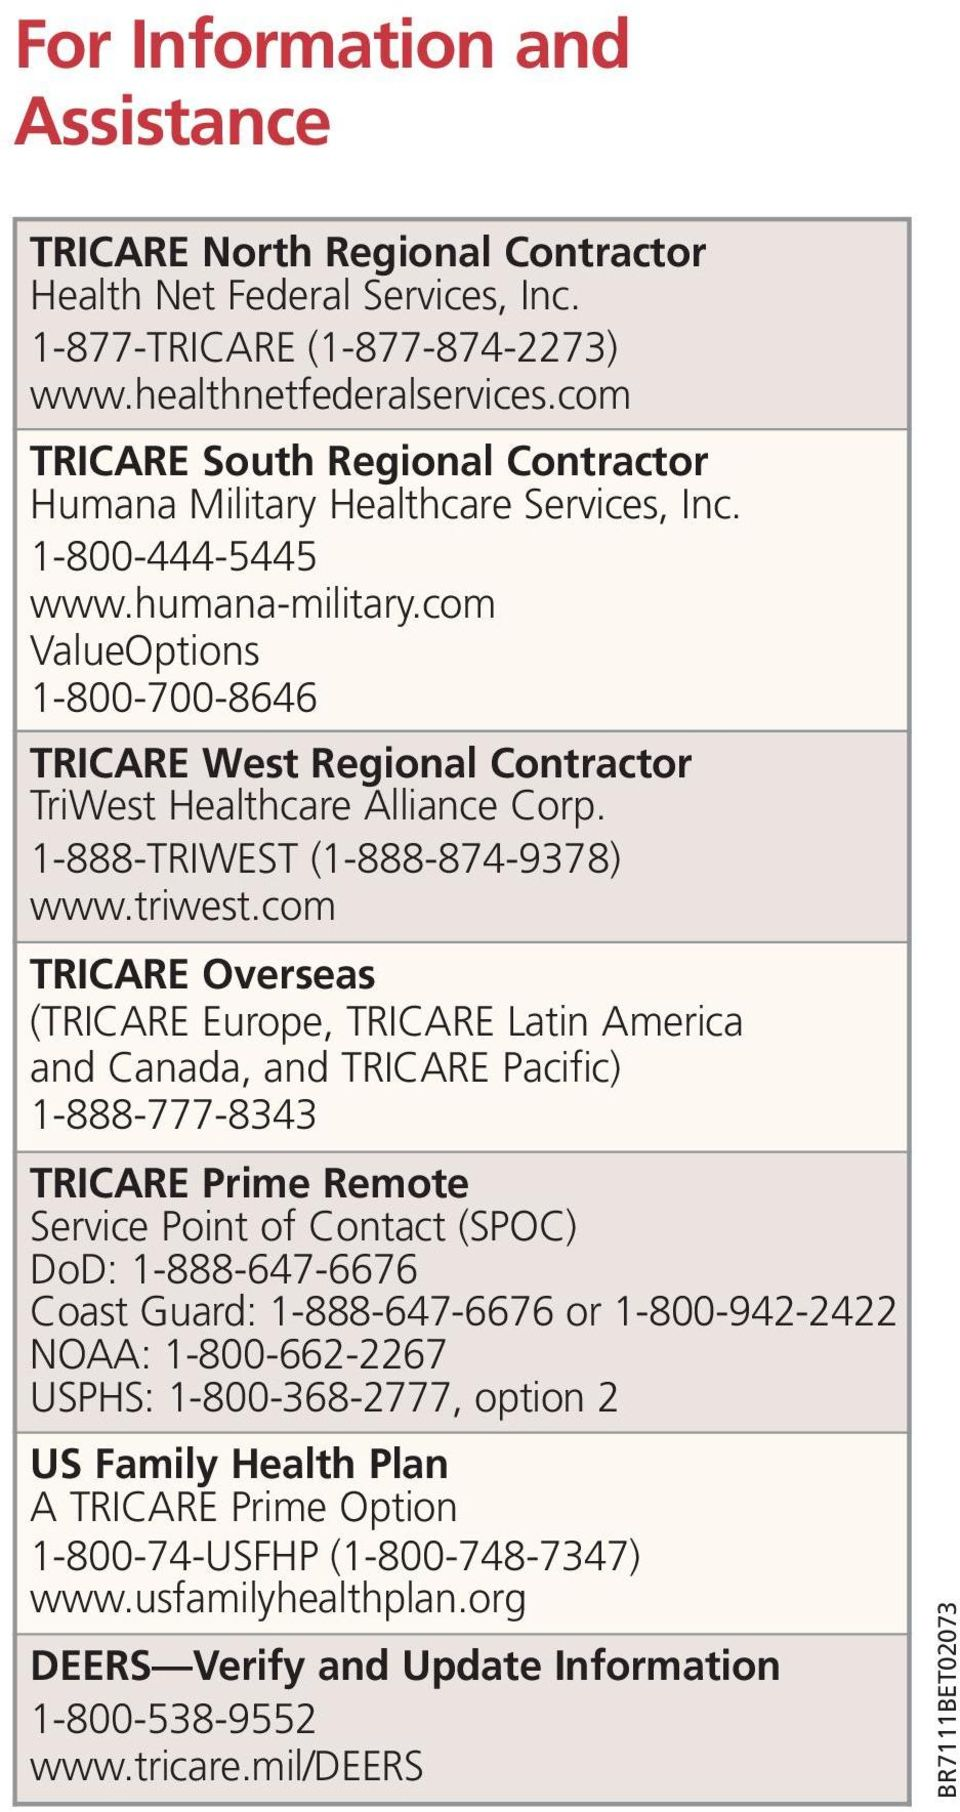 com ValueOptions 1-800-700-8646 TRICARE West Regional Contractor TriWest Healthcare Alliance Corp. 1-888-TRIWEST (1-888-874-9378) www.triwest.